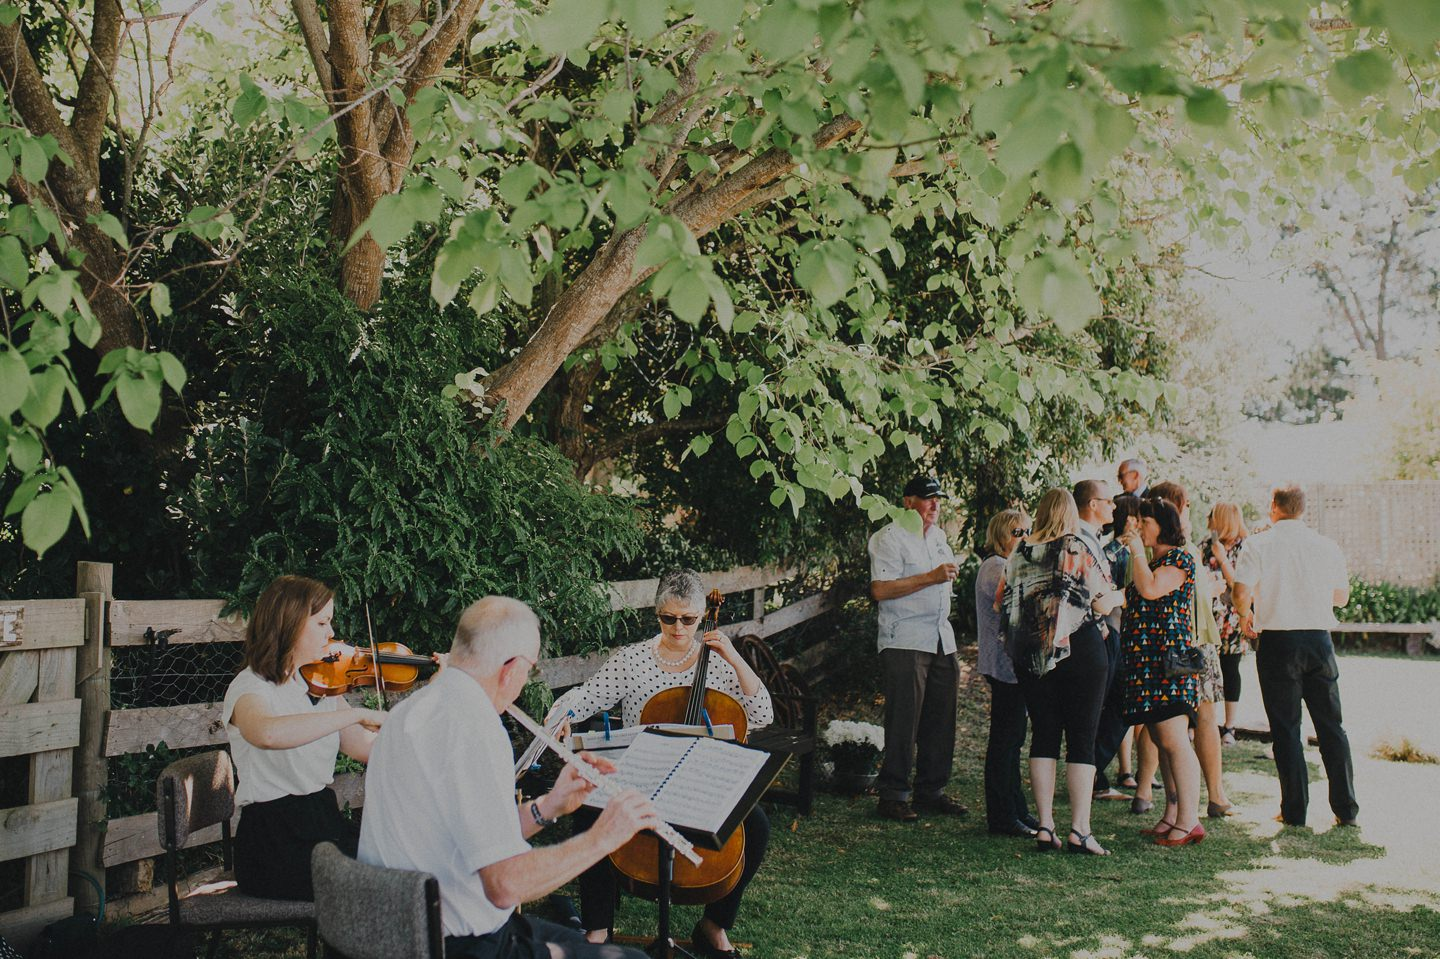 String quartet at outdoor wedding.